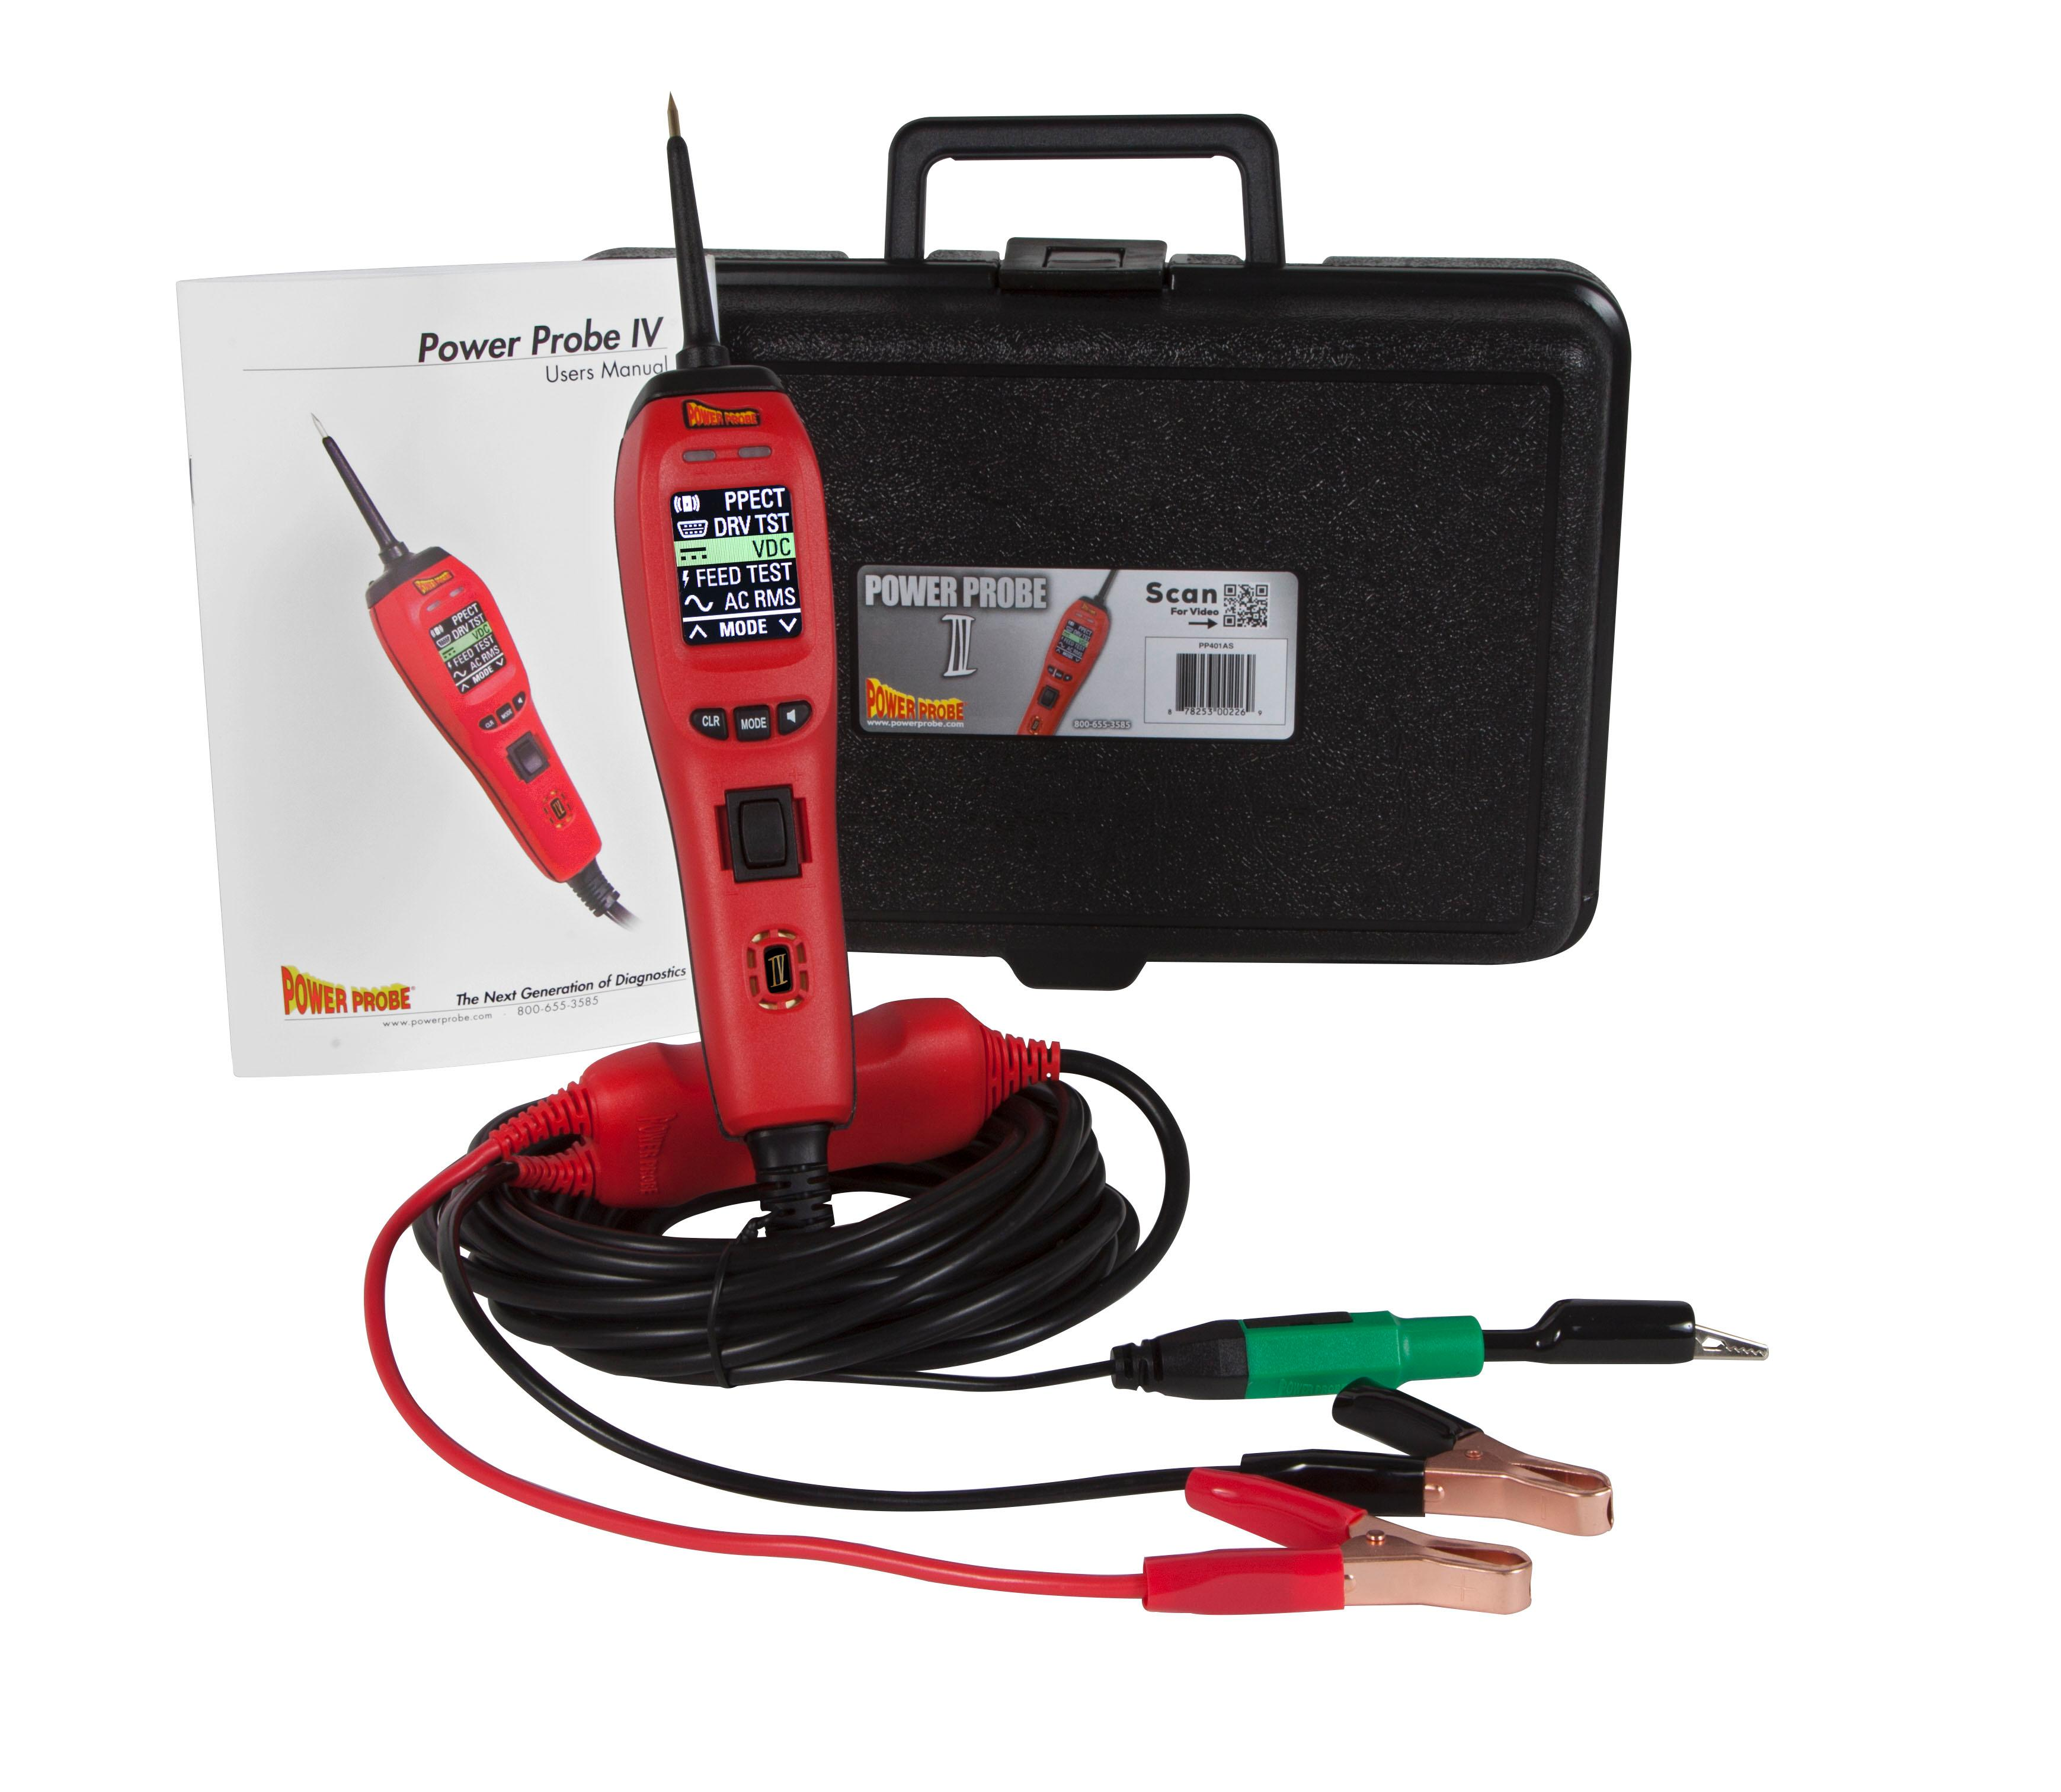 The Power Probe IV with hard carry case